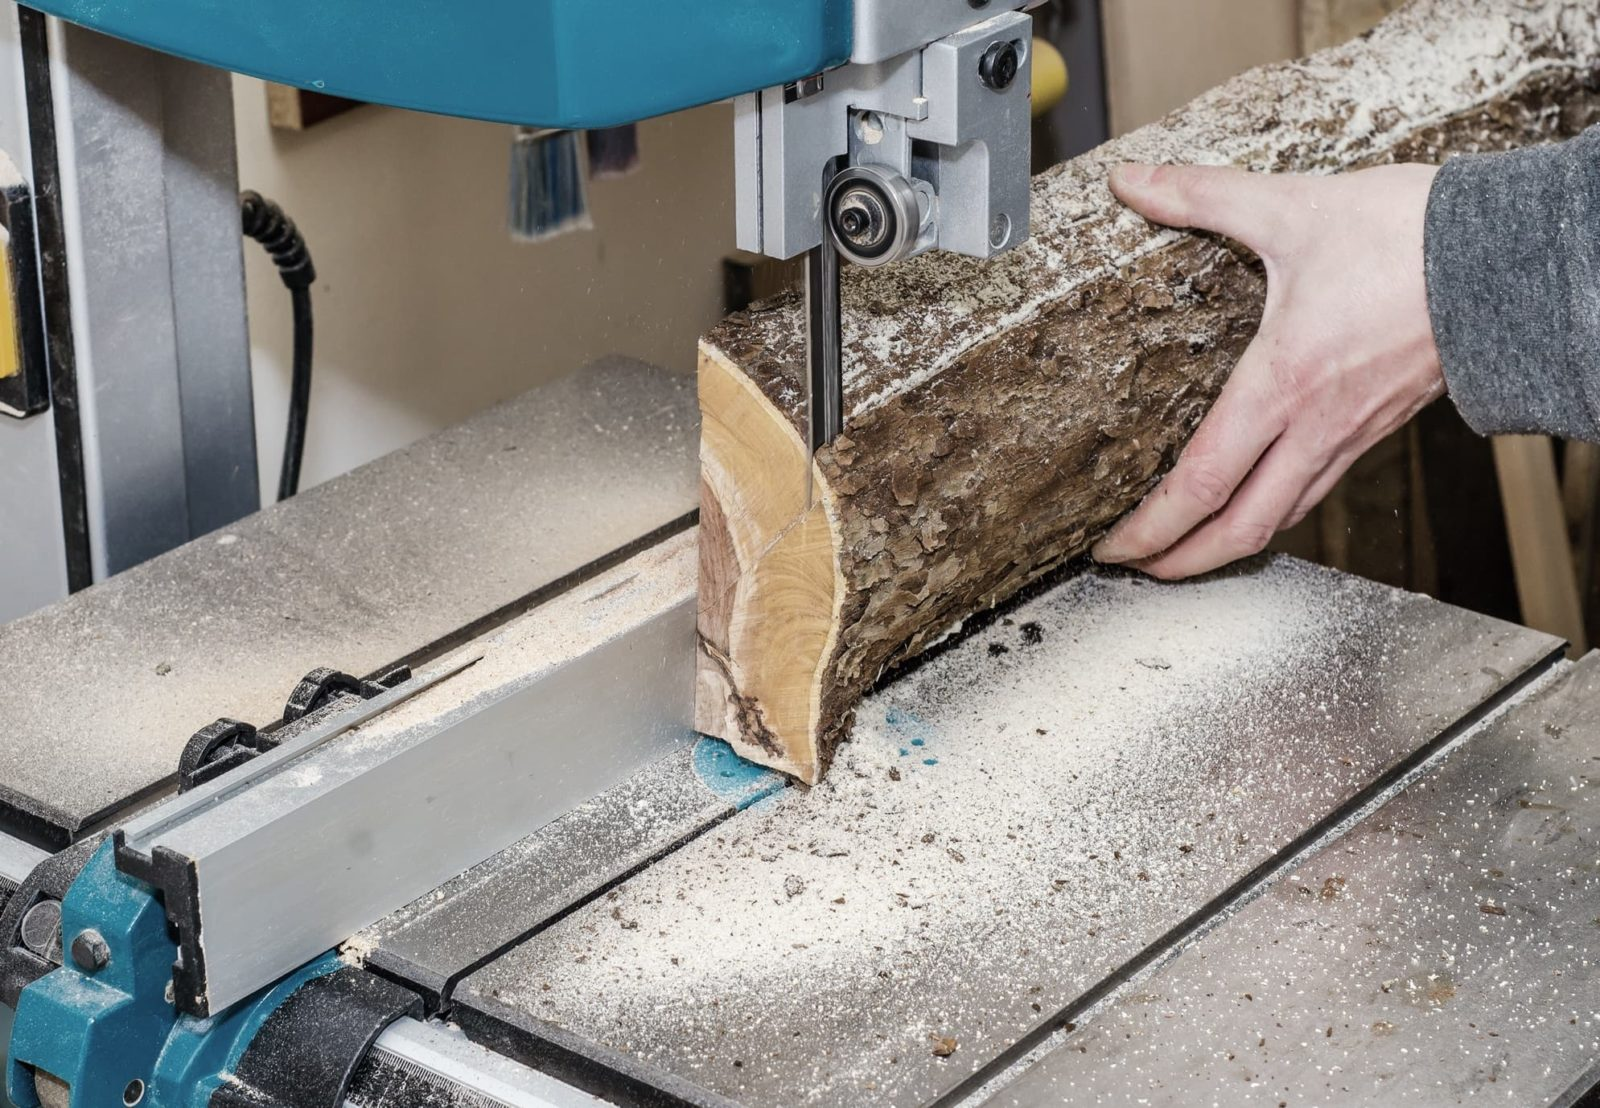 log being cut by a band saw